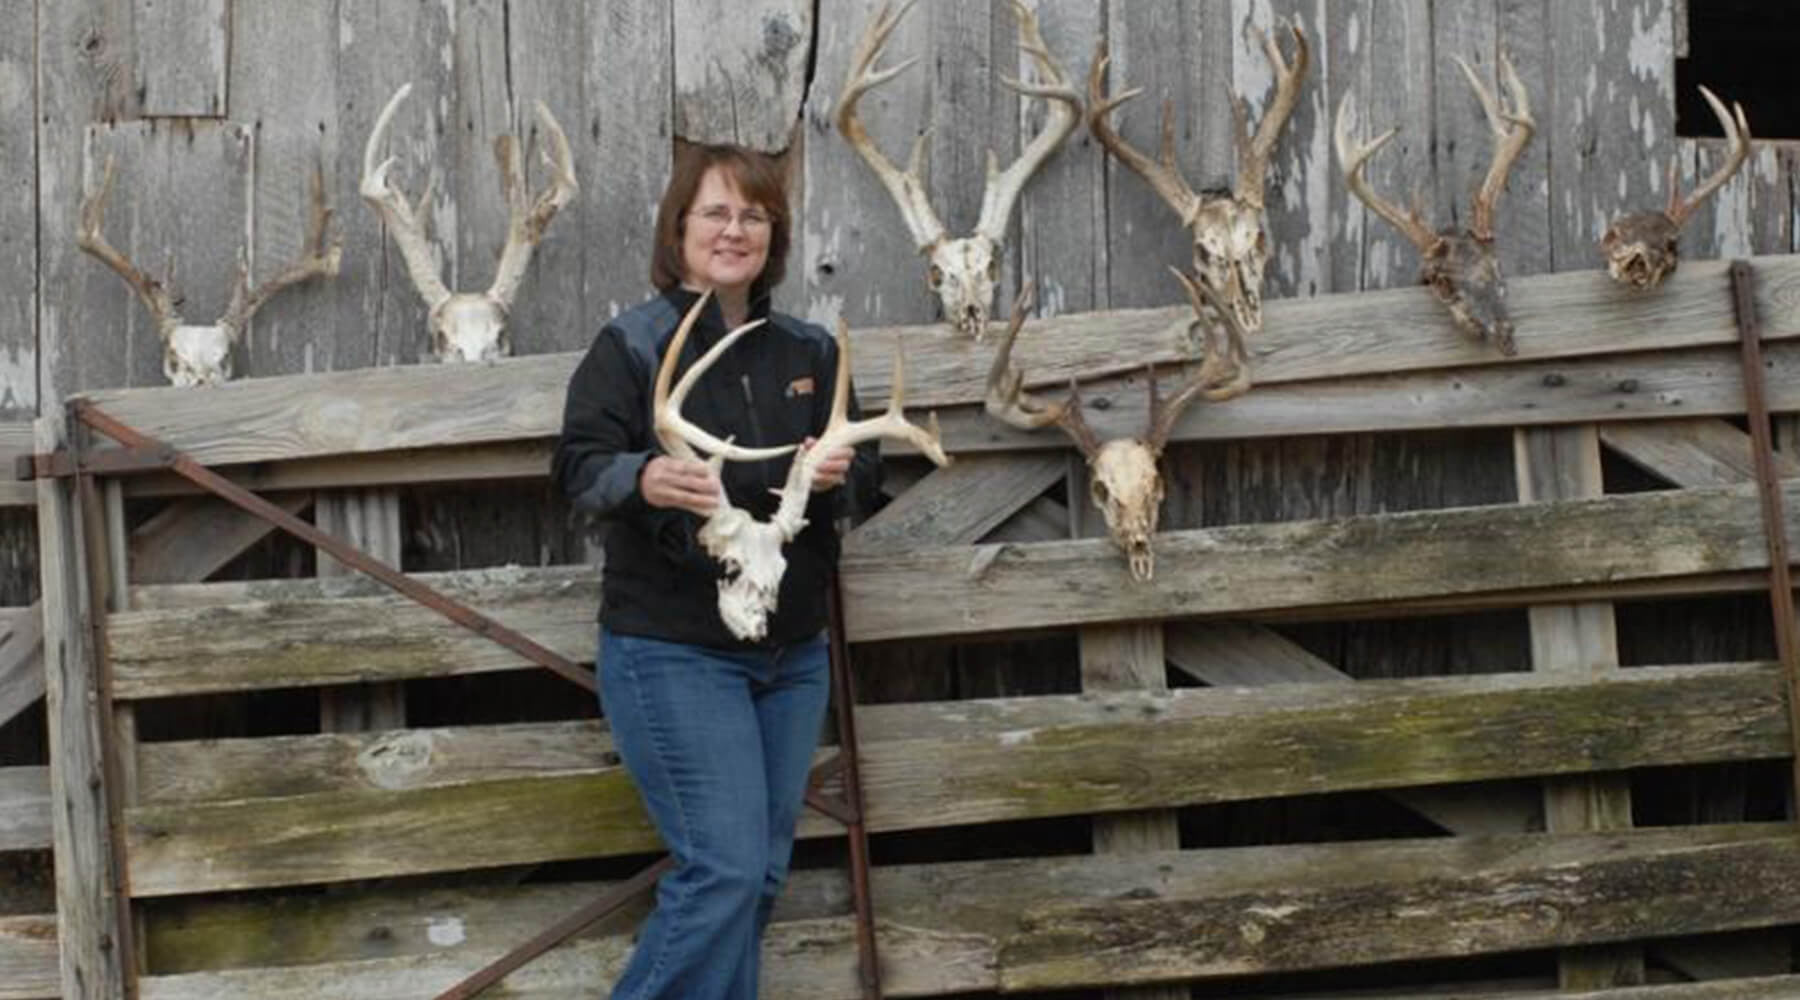 Shed Antler Hunting: When It's Not Just Antlers